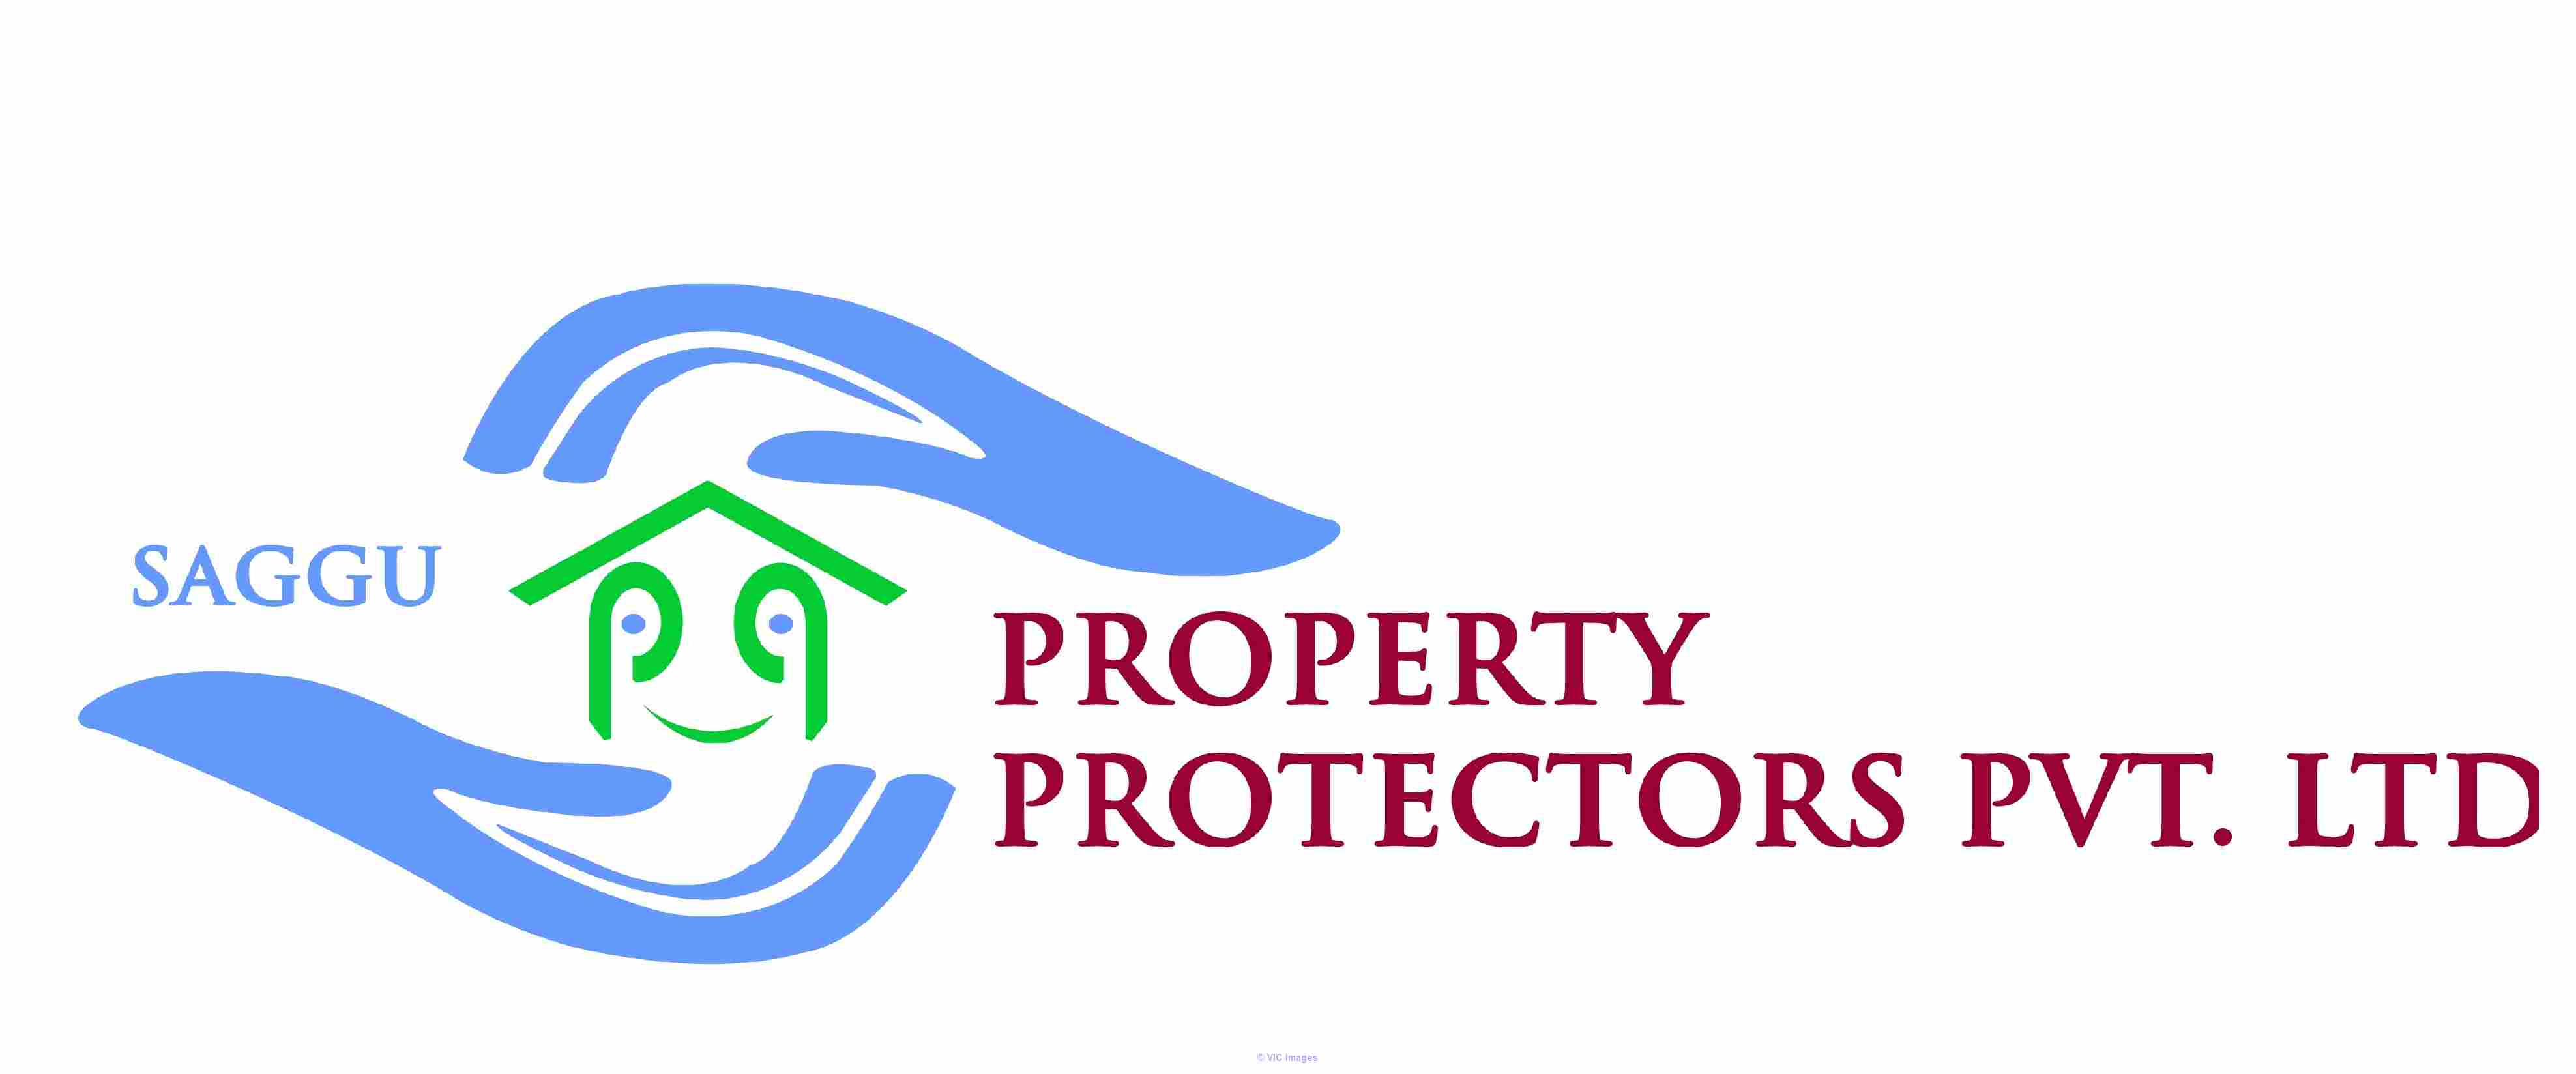 Saggu Property Protectors Private Limited Calgary, Alberta, Canada Classifieds